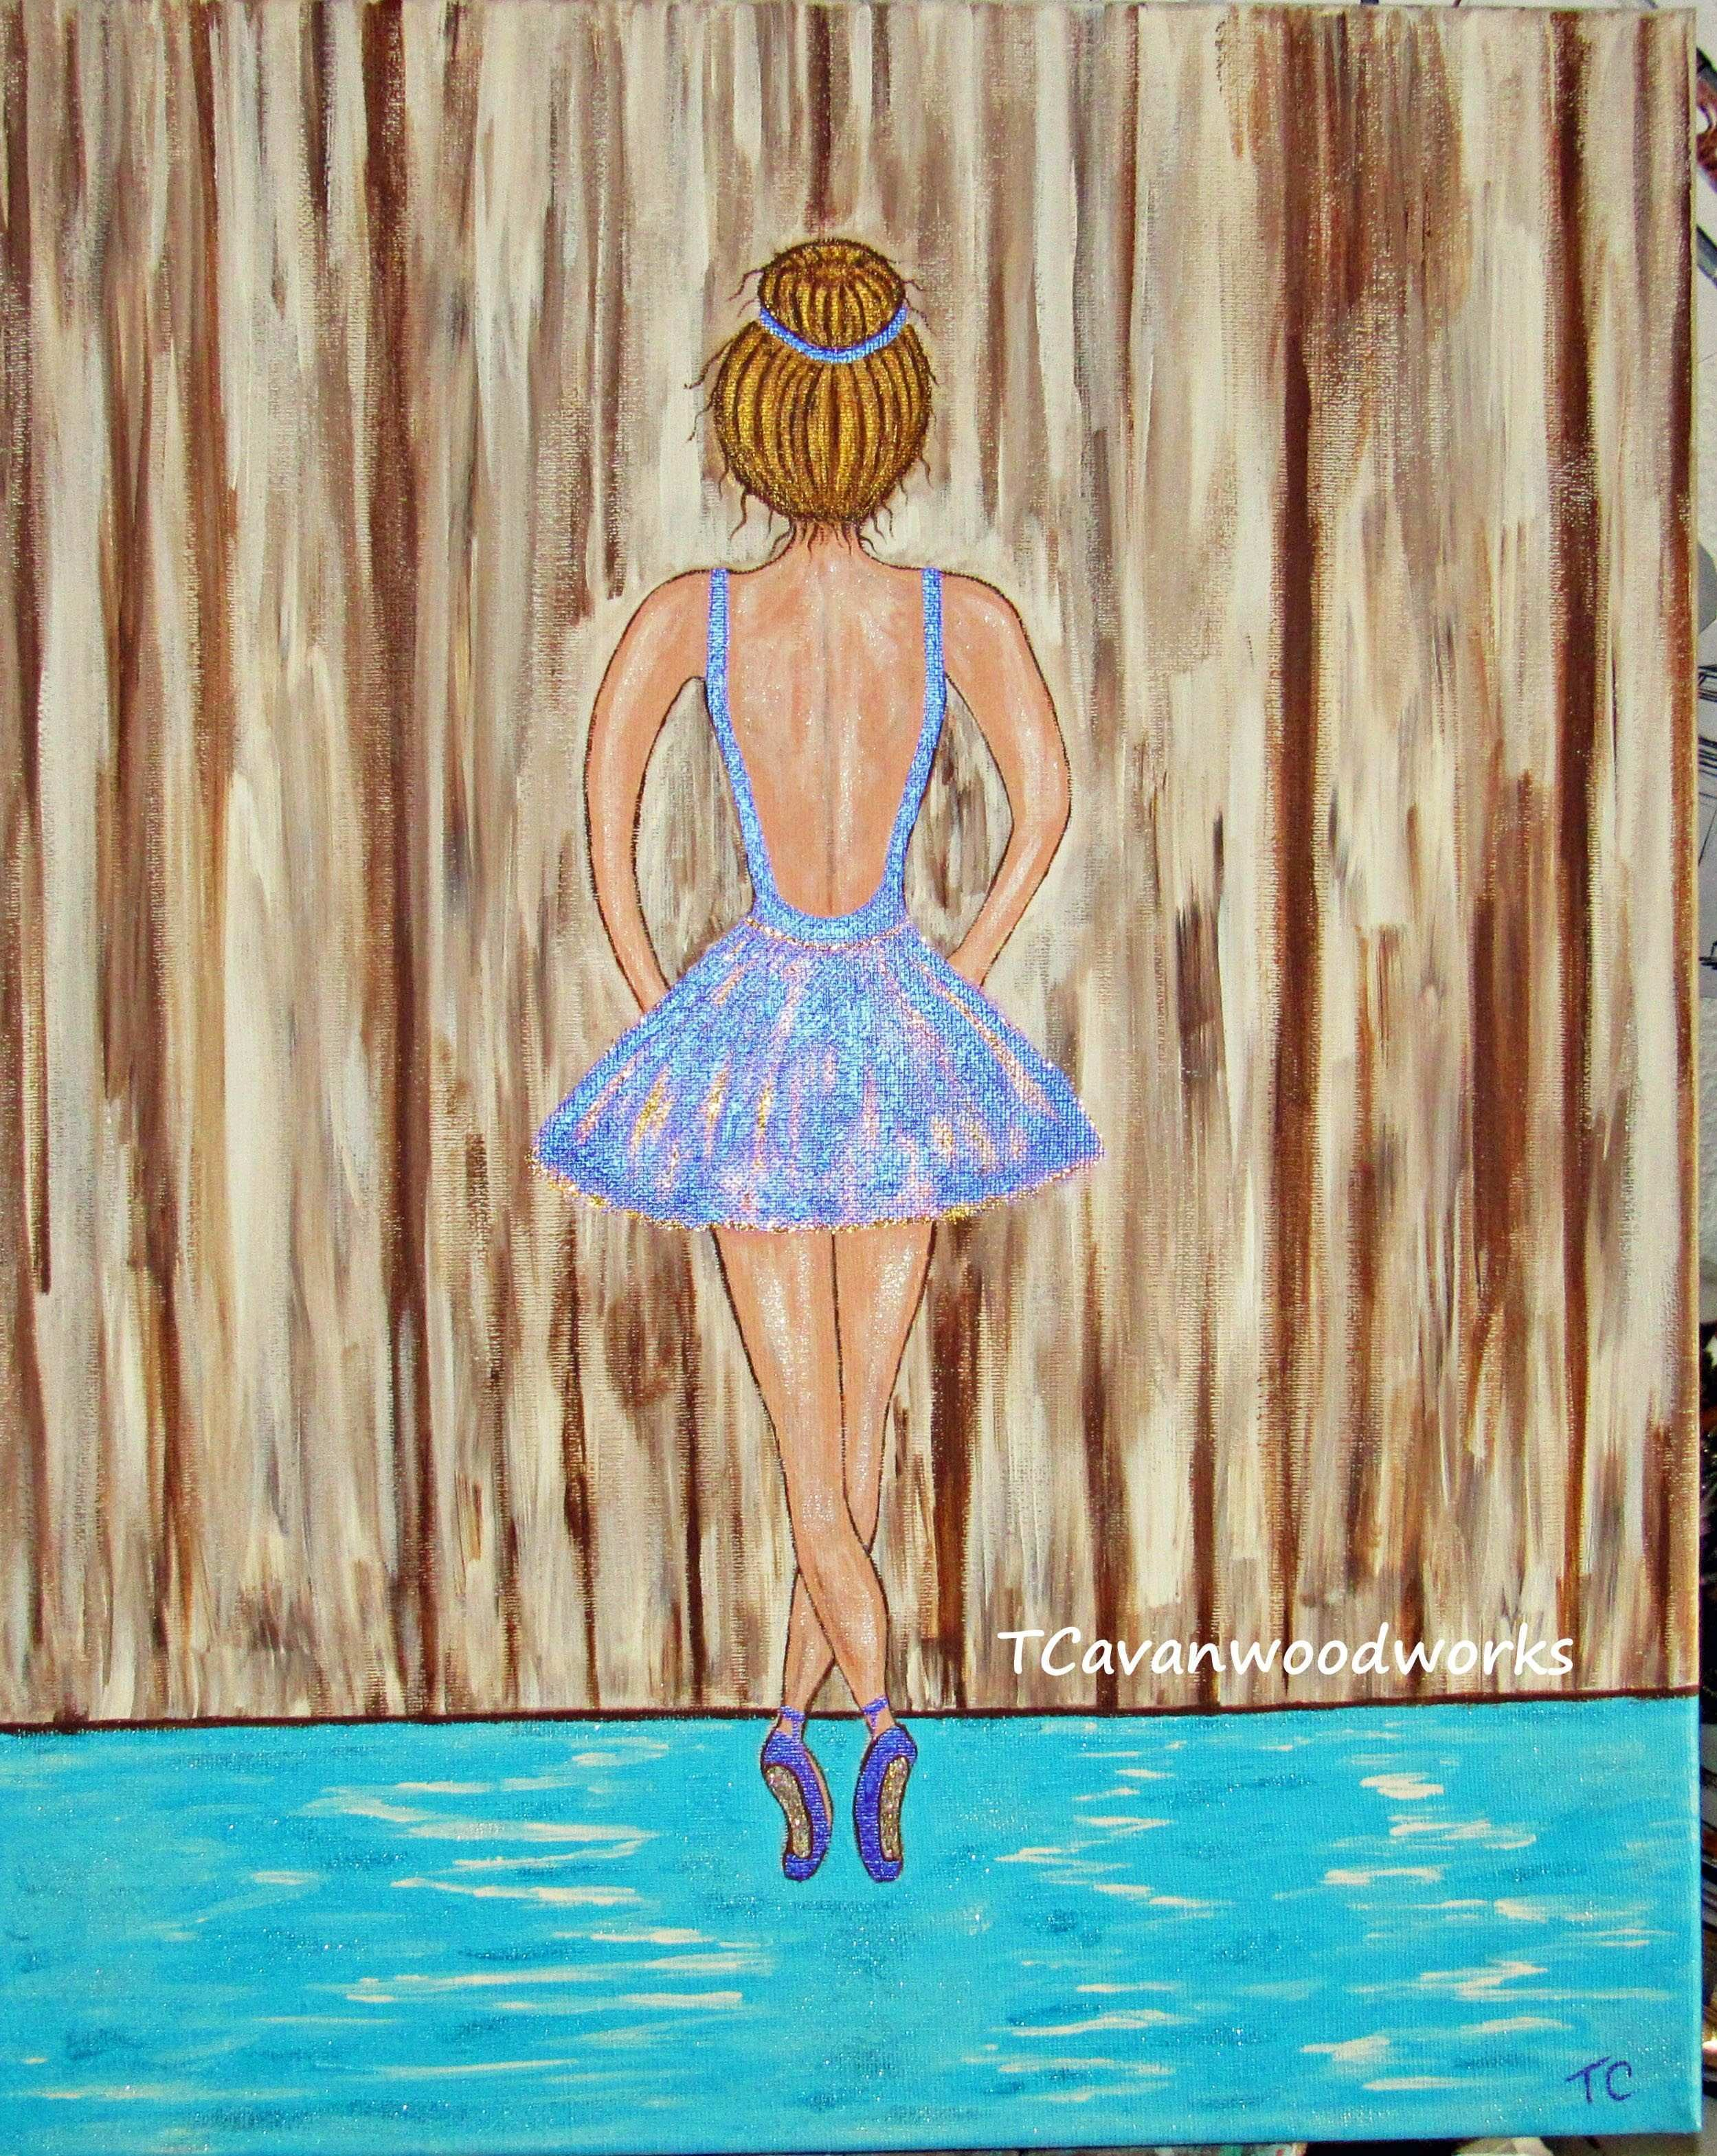 Ballerina acrylic painting on canvas original artwork by